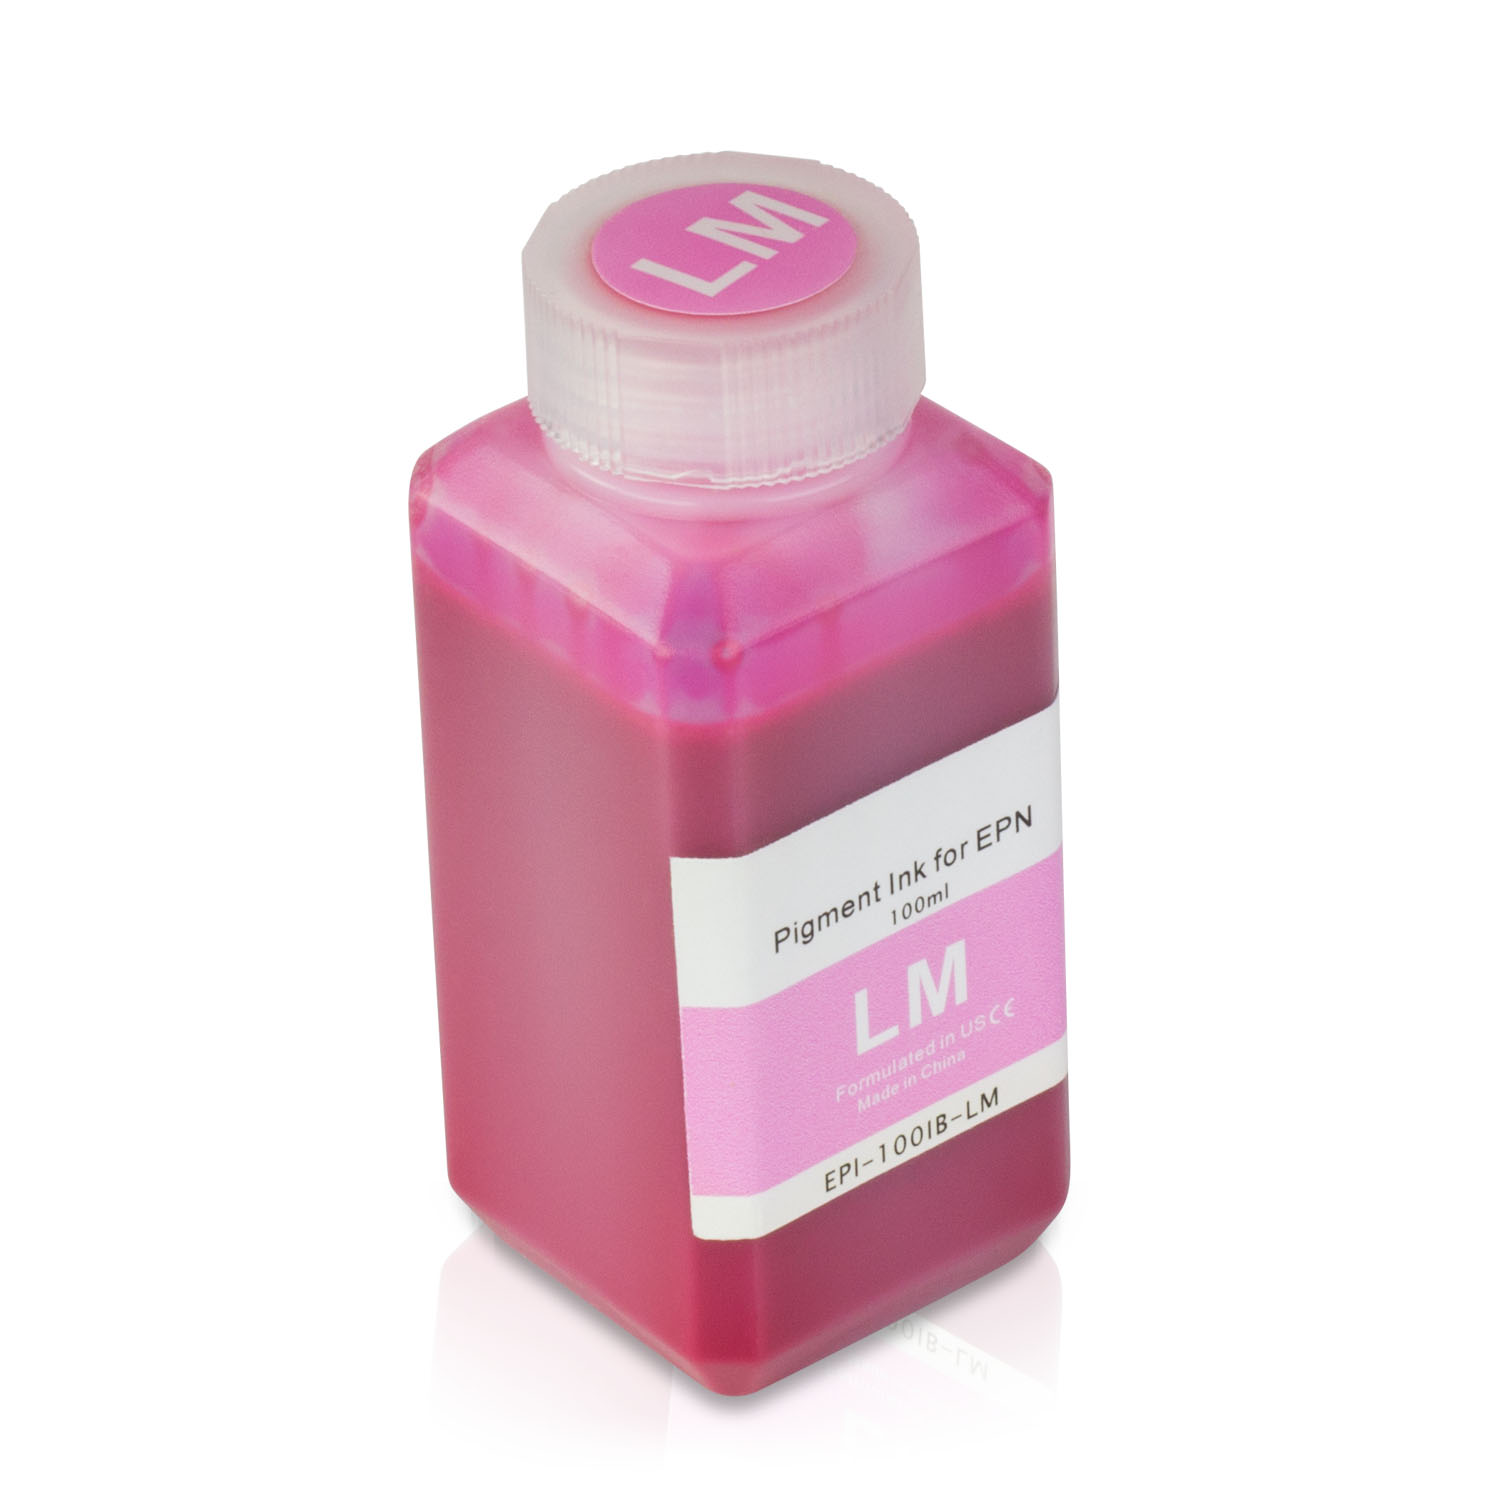 1 Bottle (100ml) Refill Ink - ALLINKTONER Epson Compatible Light Magenta Pigment for Epson Printers